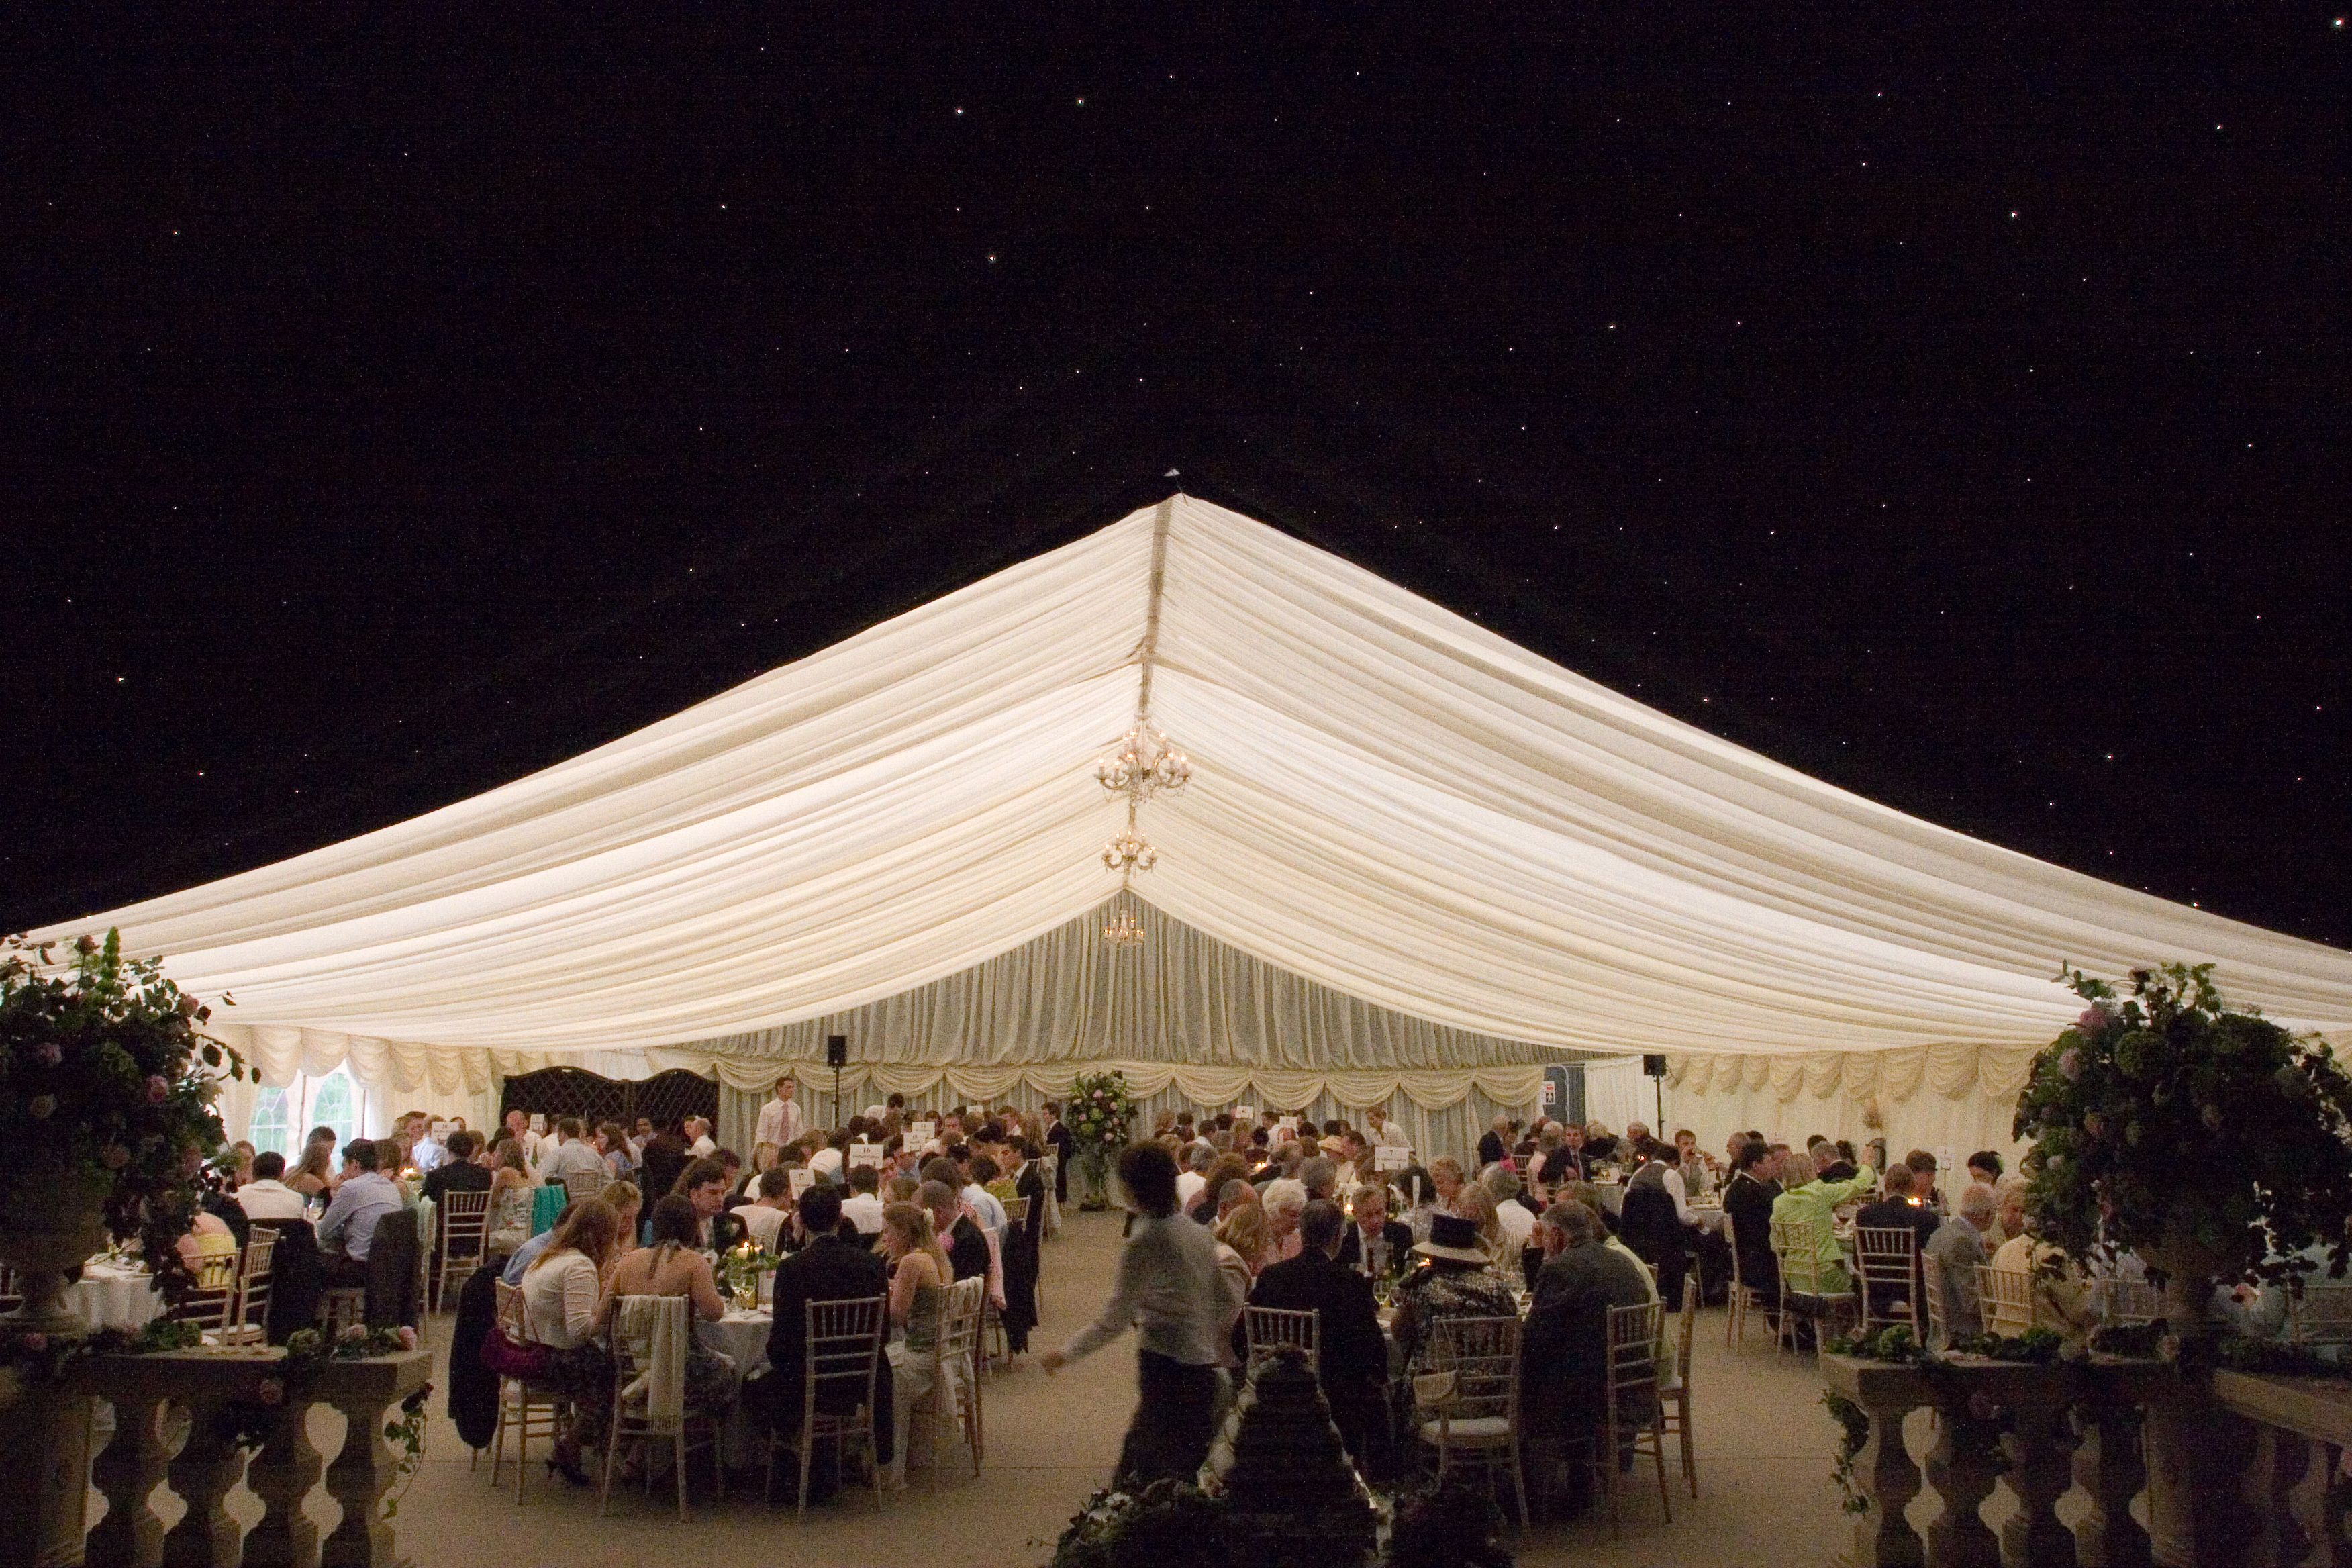 Marquee shot